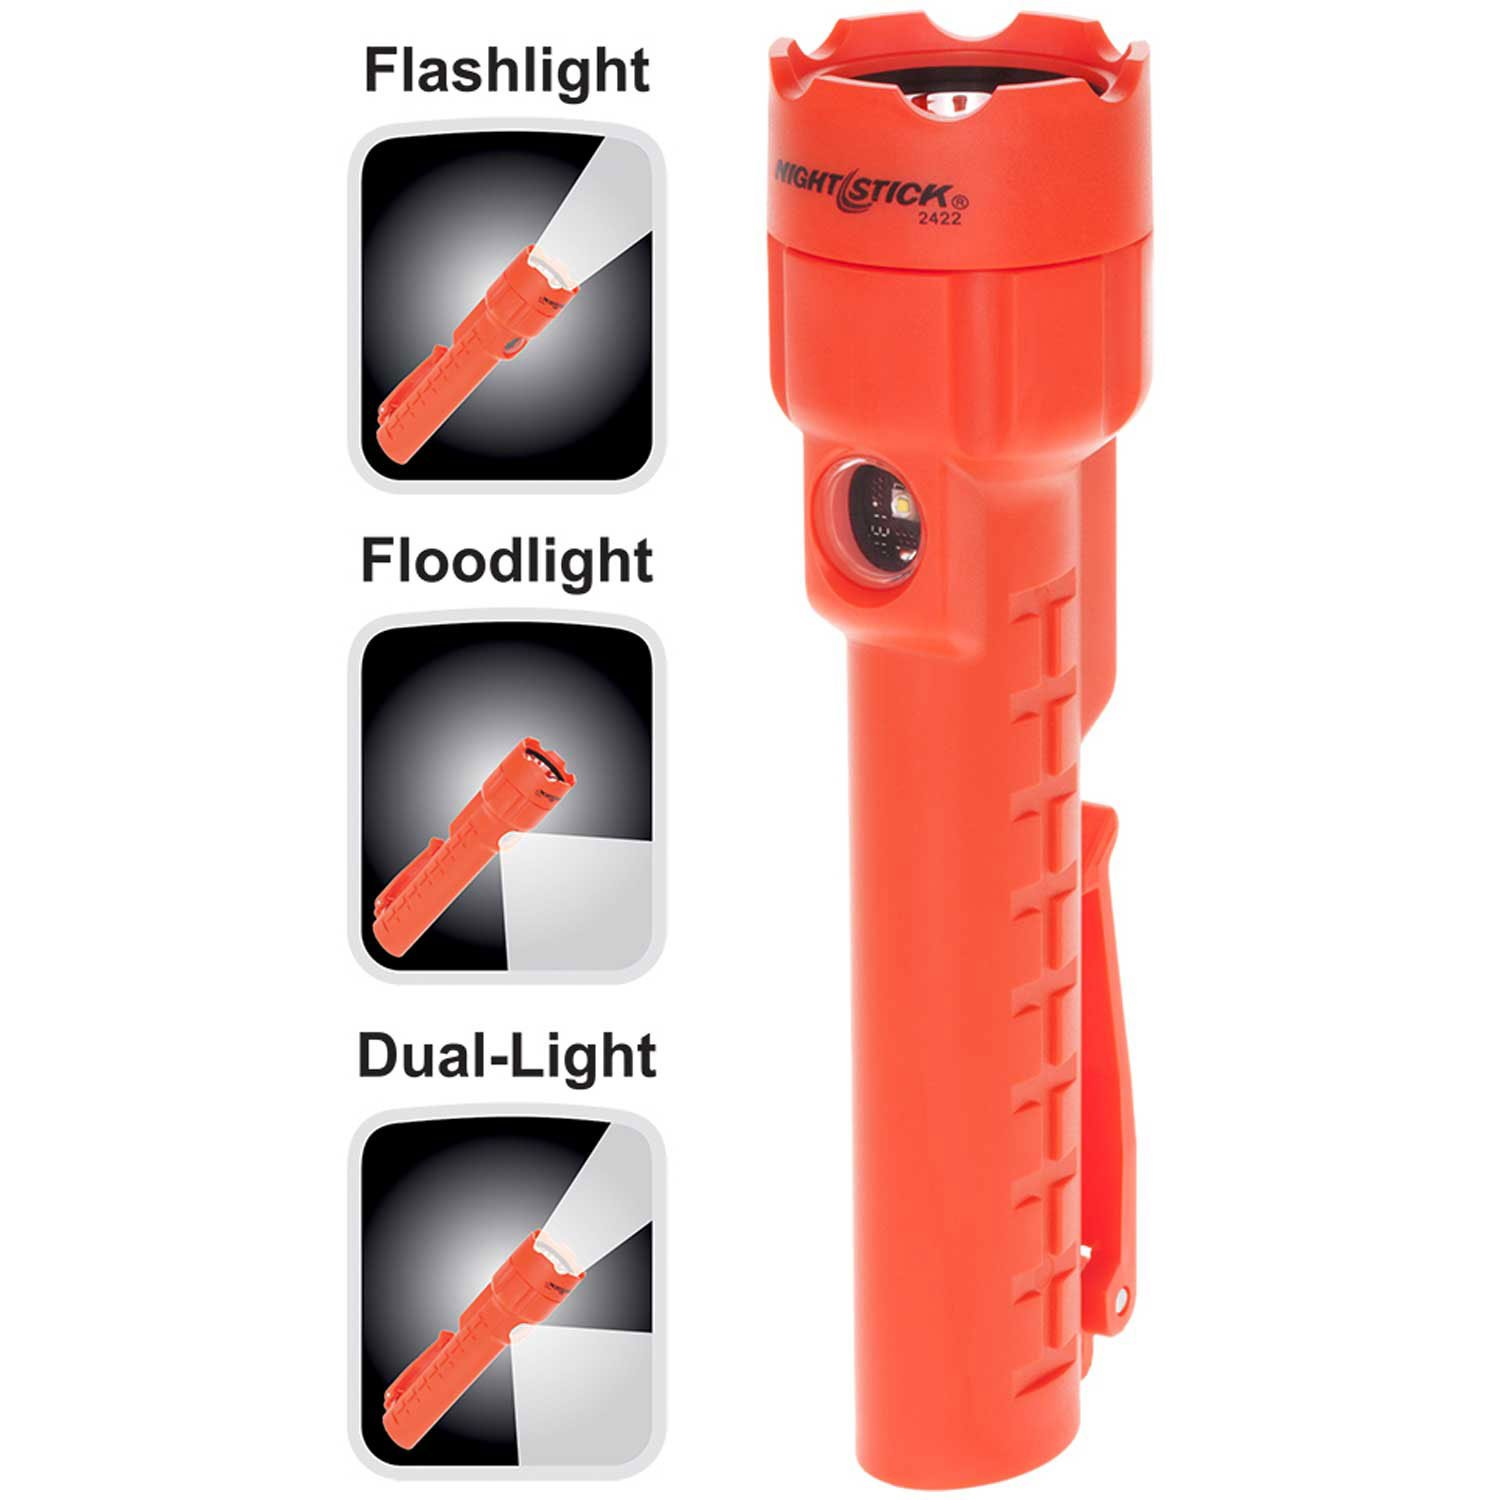 Bayco NSP-2422R Multi-Purpose Dual-Light with Magnet - Red - 3 AA Batteries (Pack of 4)